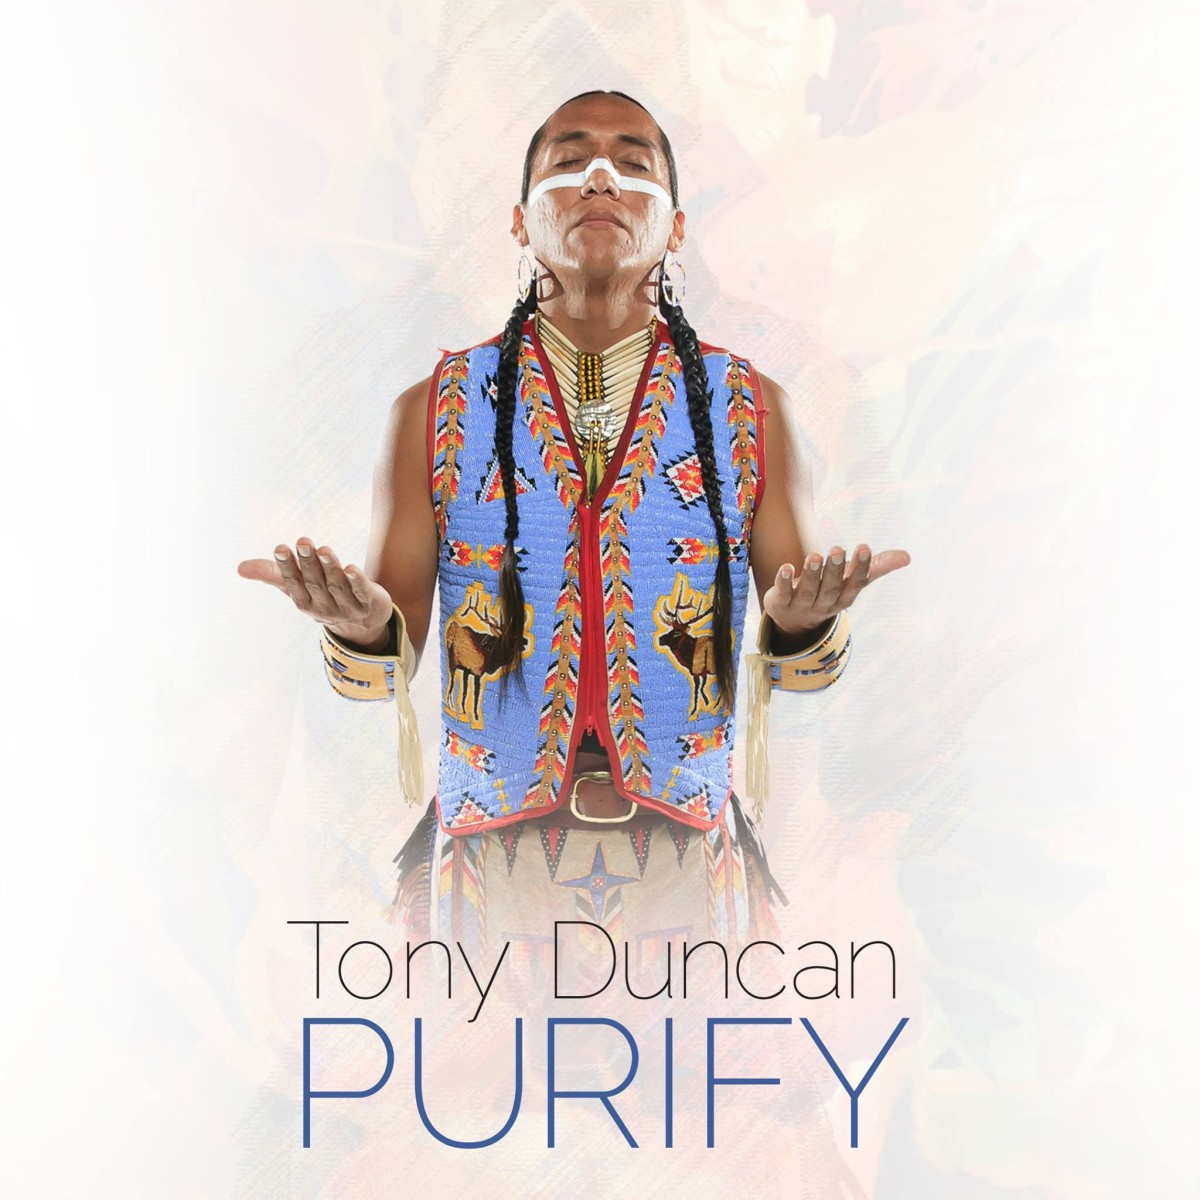 Purify by Tony Duncan and released by Canyon Records